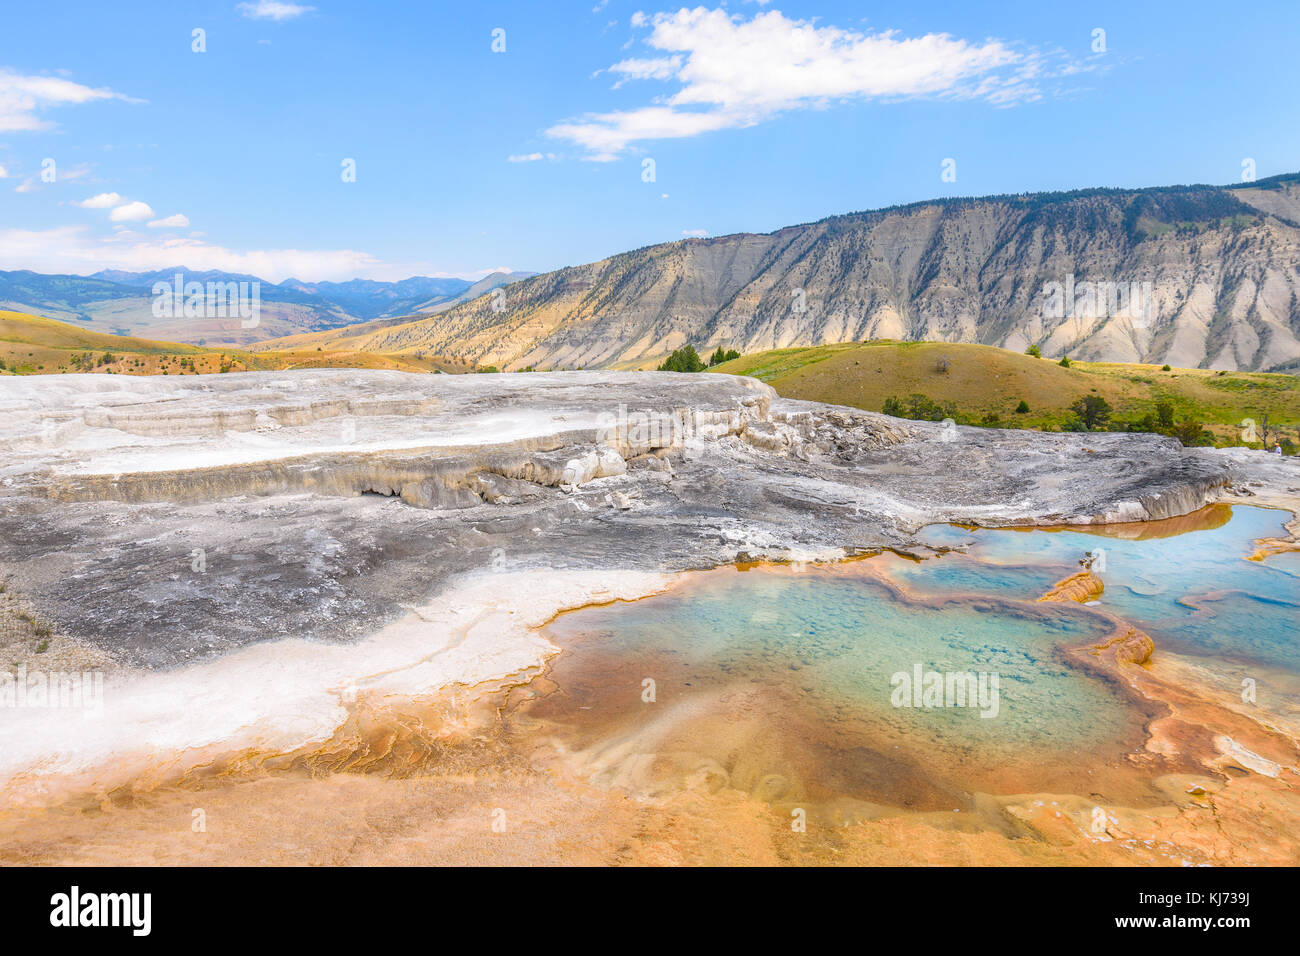 Mineral Hot Pools of Yellowstone National Park. Mammoth Hot Springs Area. - Stock Image